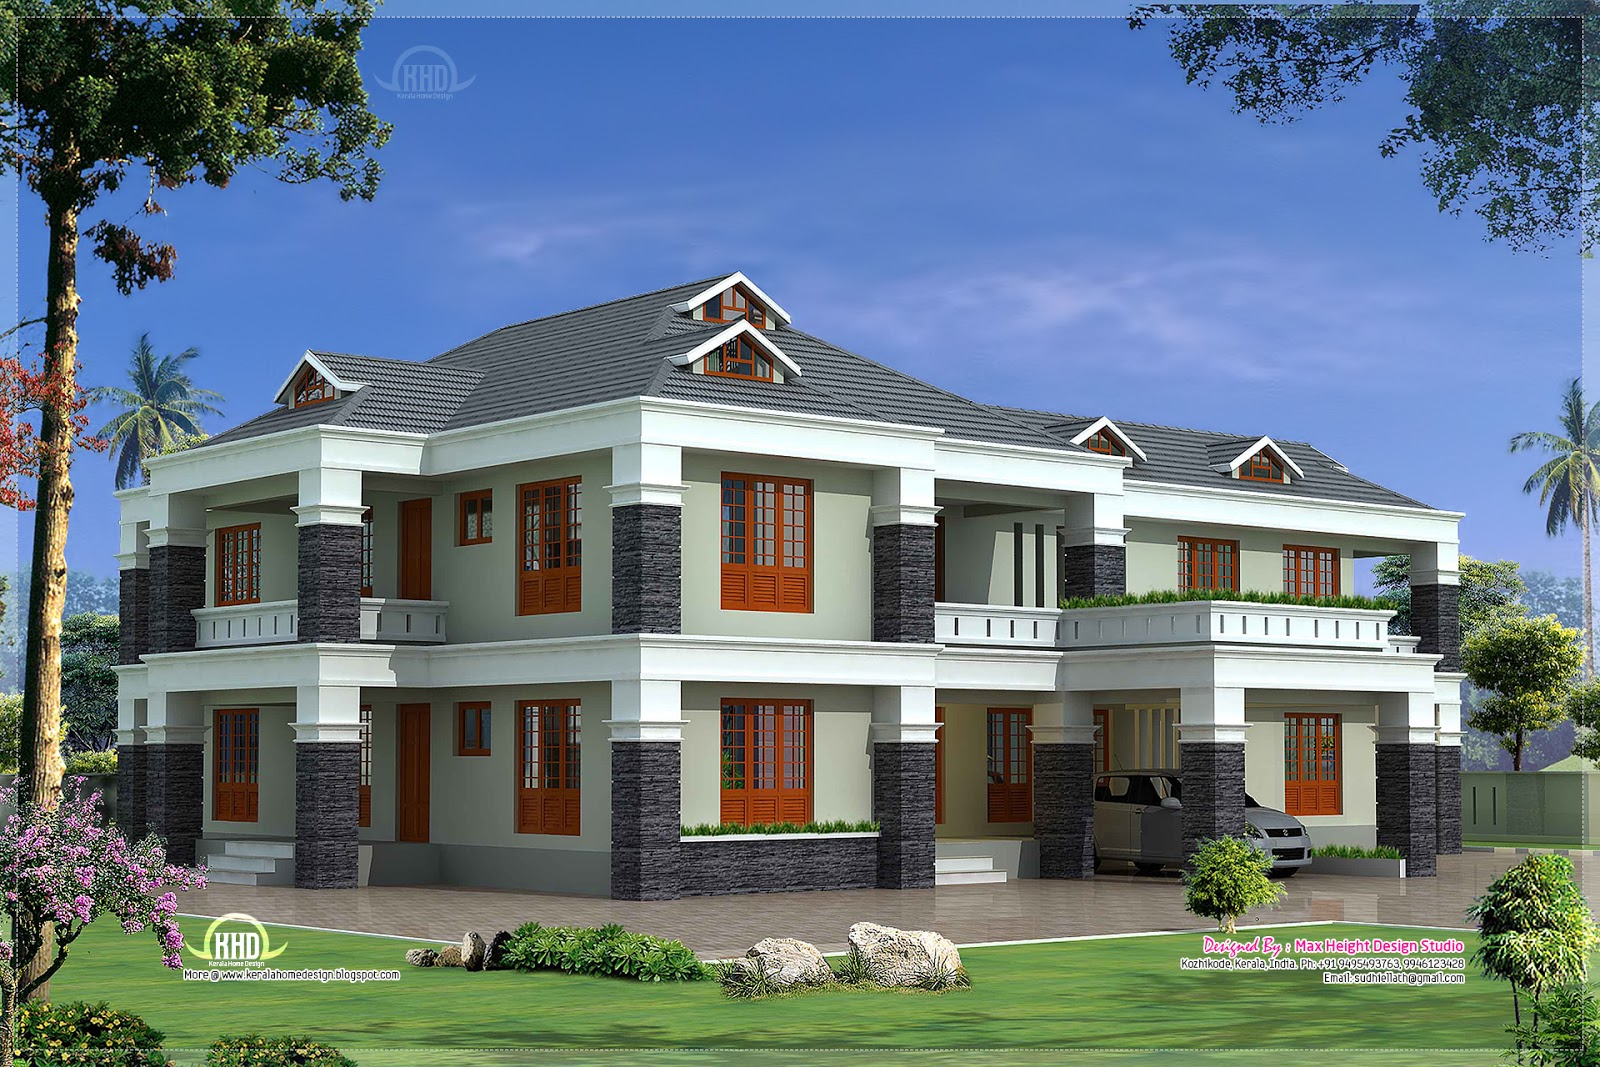 4000 luxury villa exterior kerala home design for Luxury house exterior designs